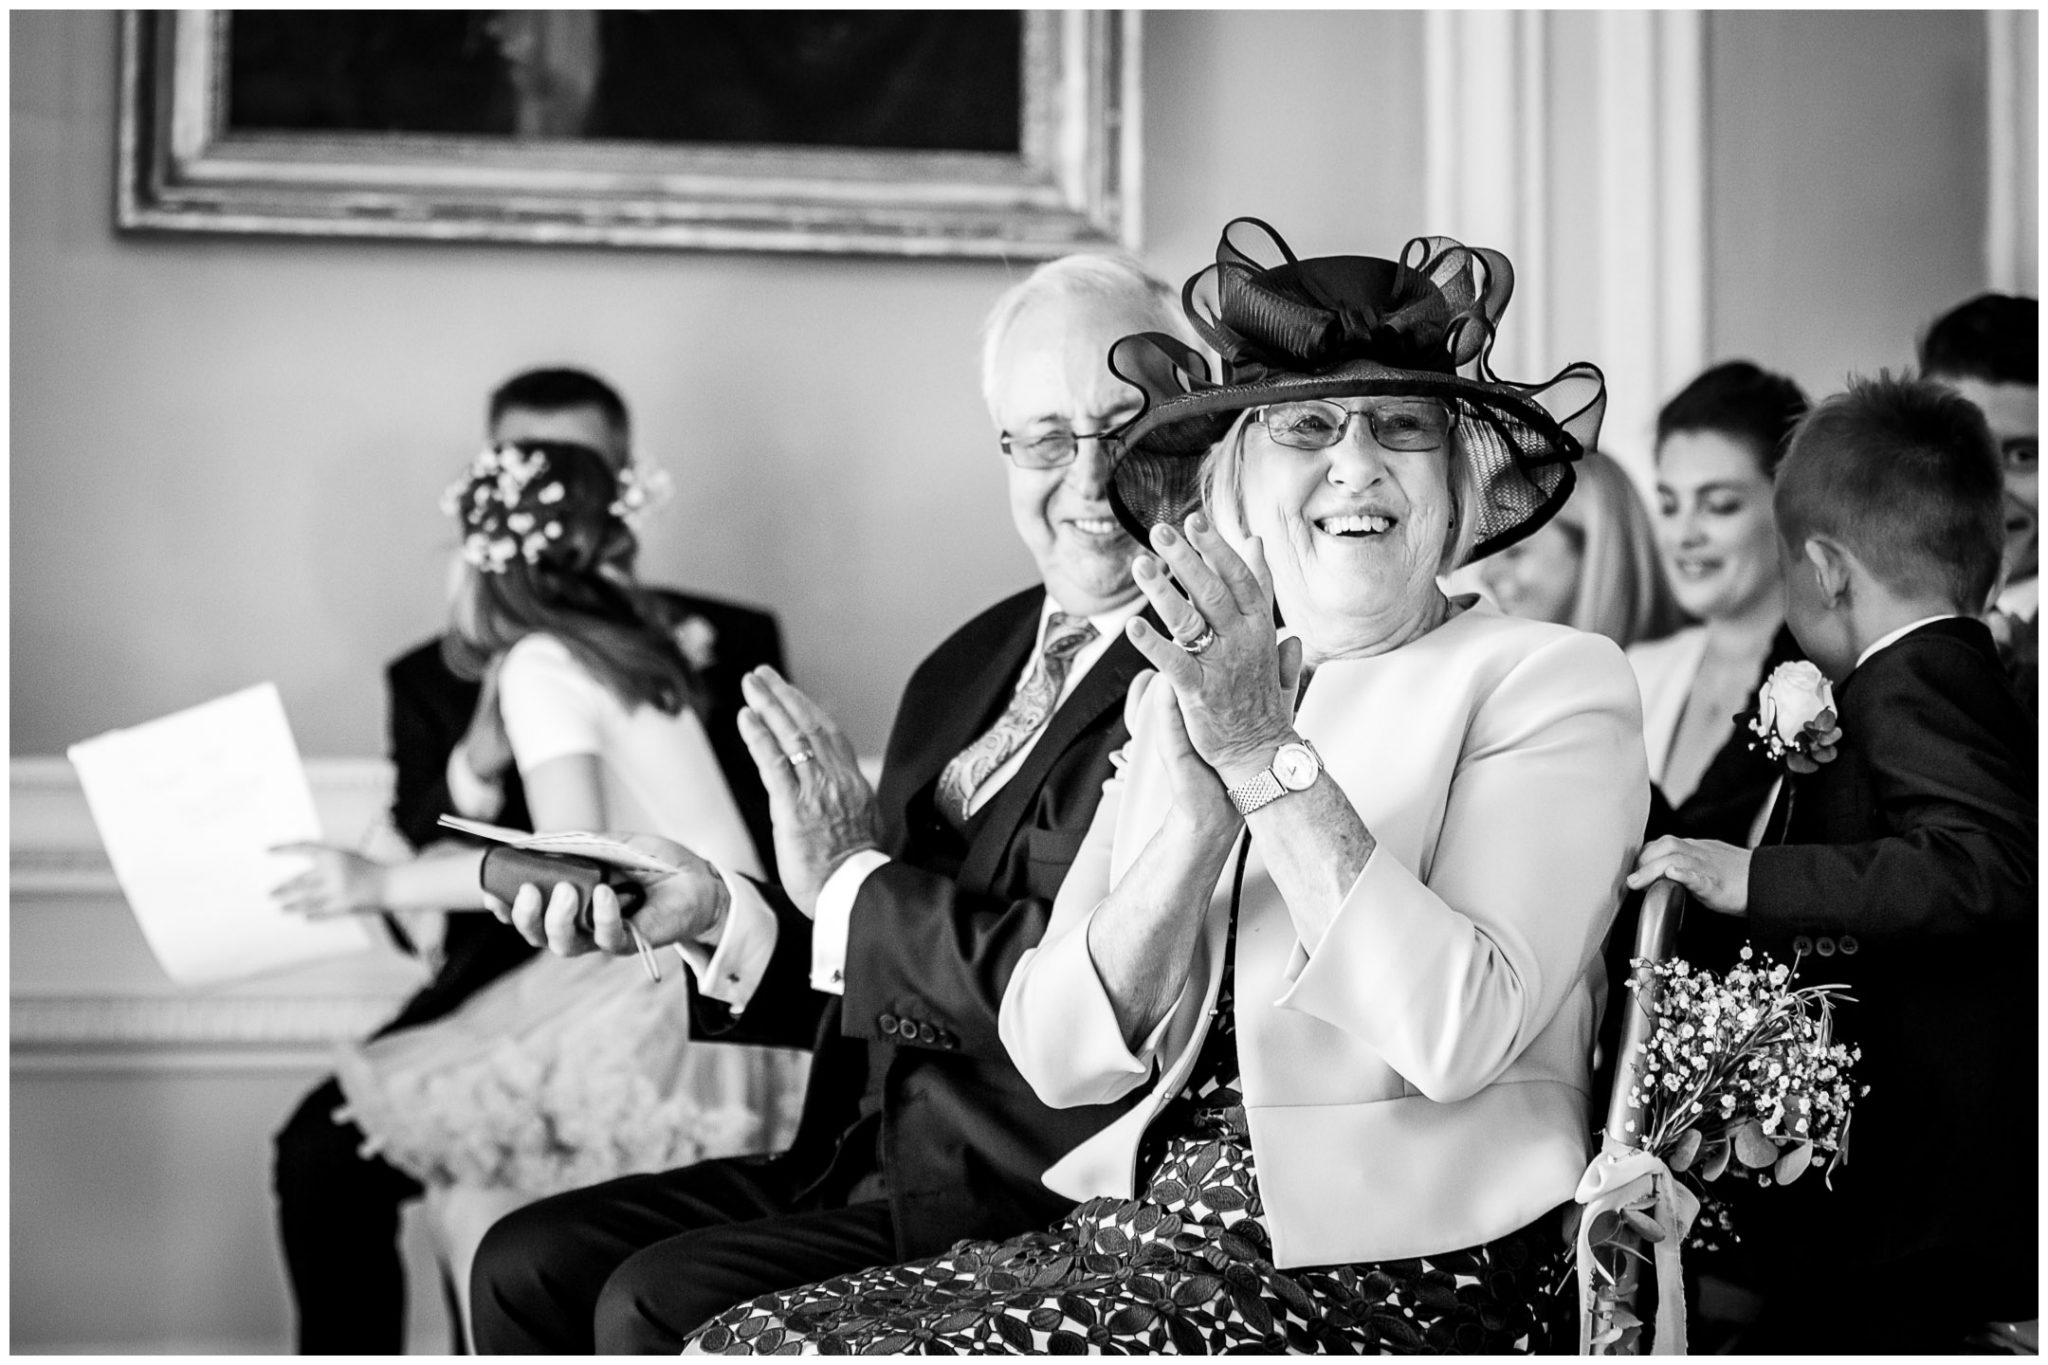 The mother of the groom applauds a reading